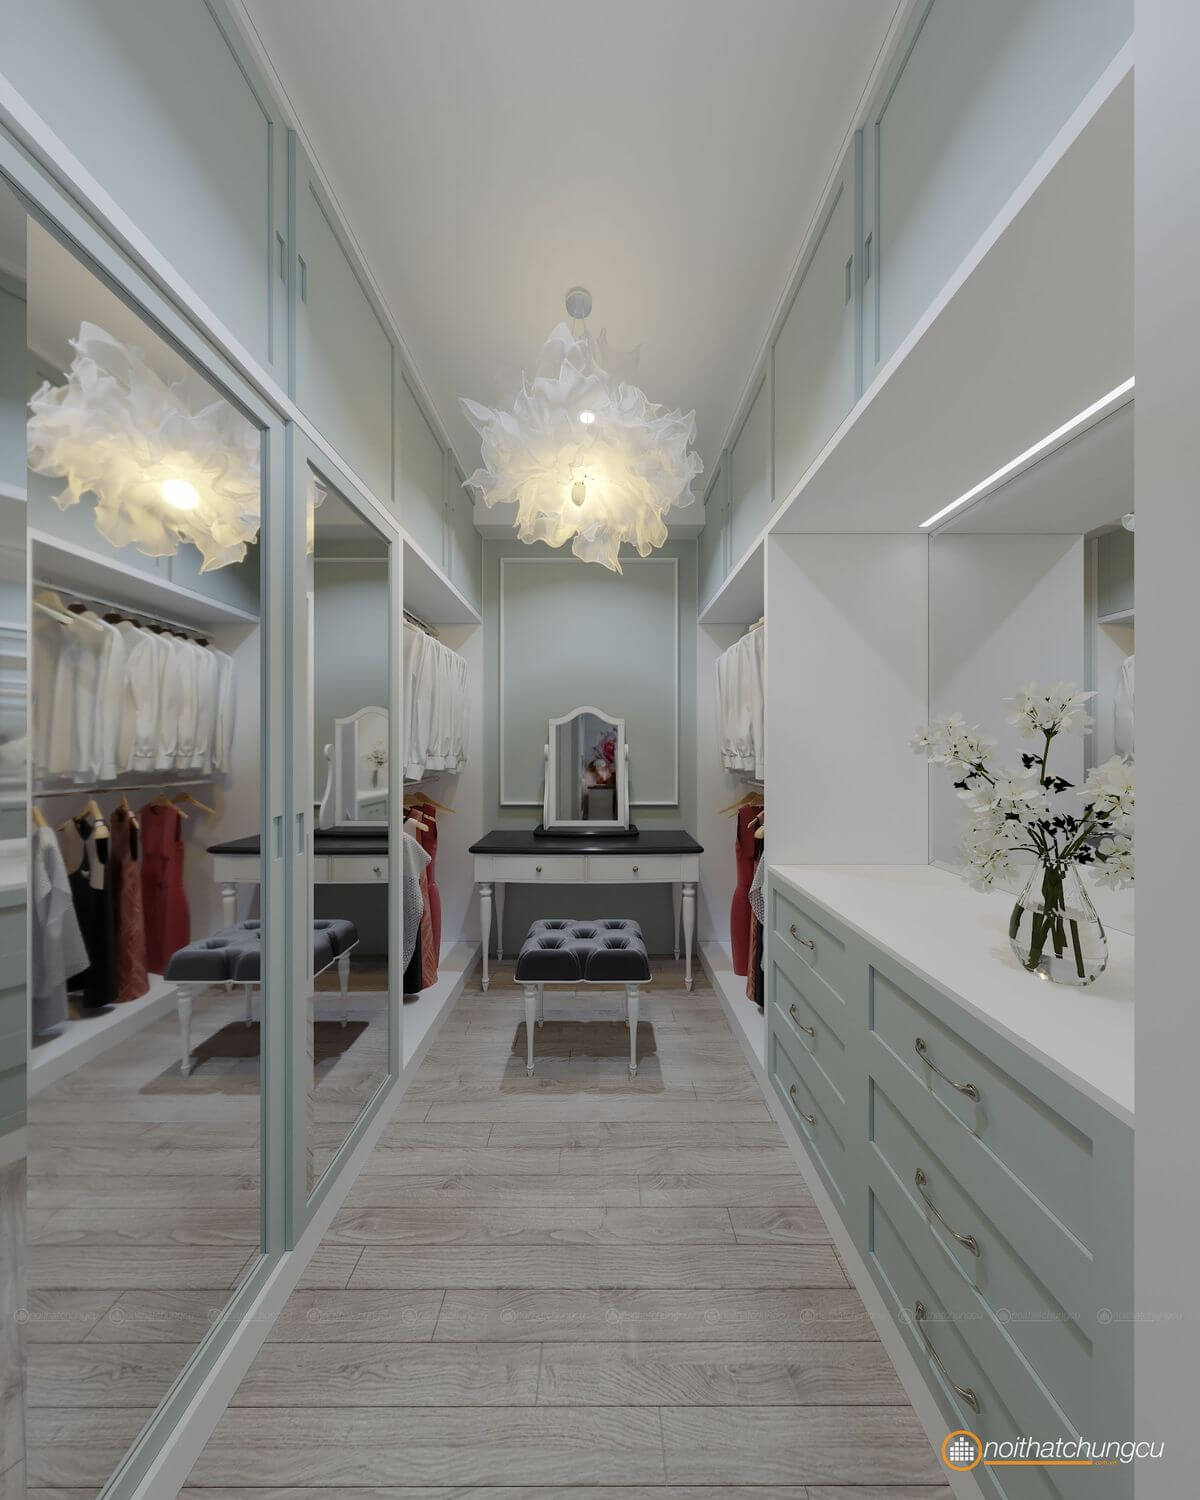 thiet ke noi that the sun avene 79m2 de190027tc 11 closet noithatchungcu